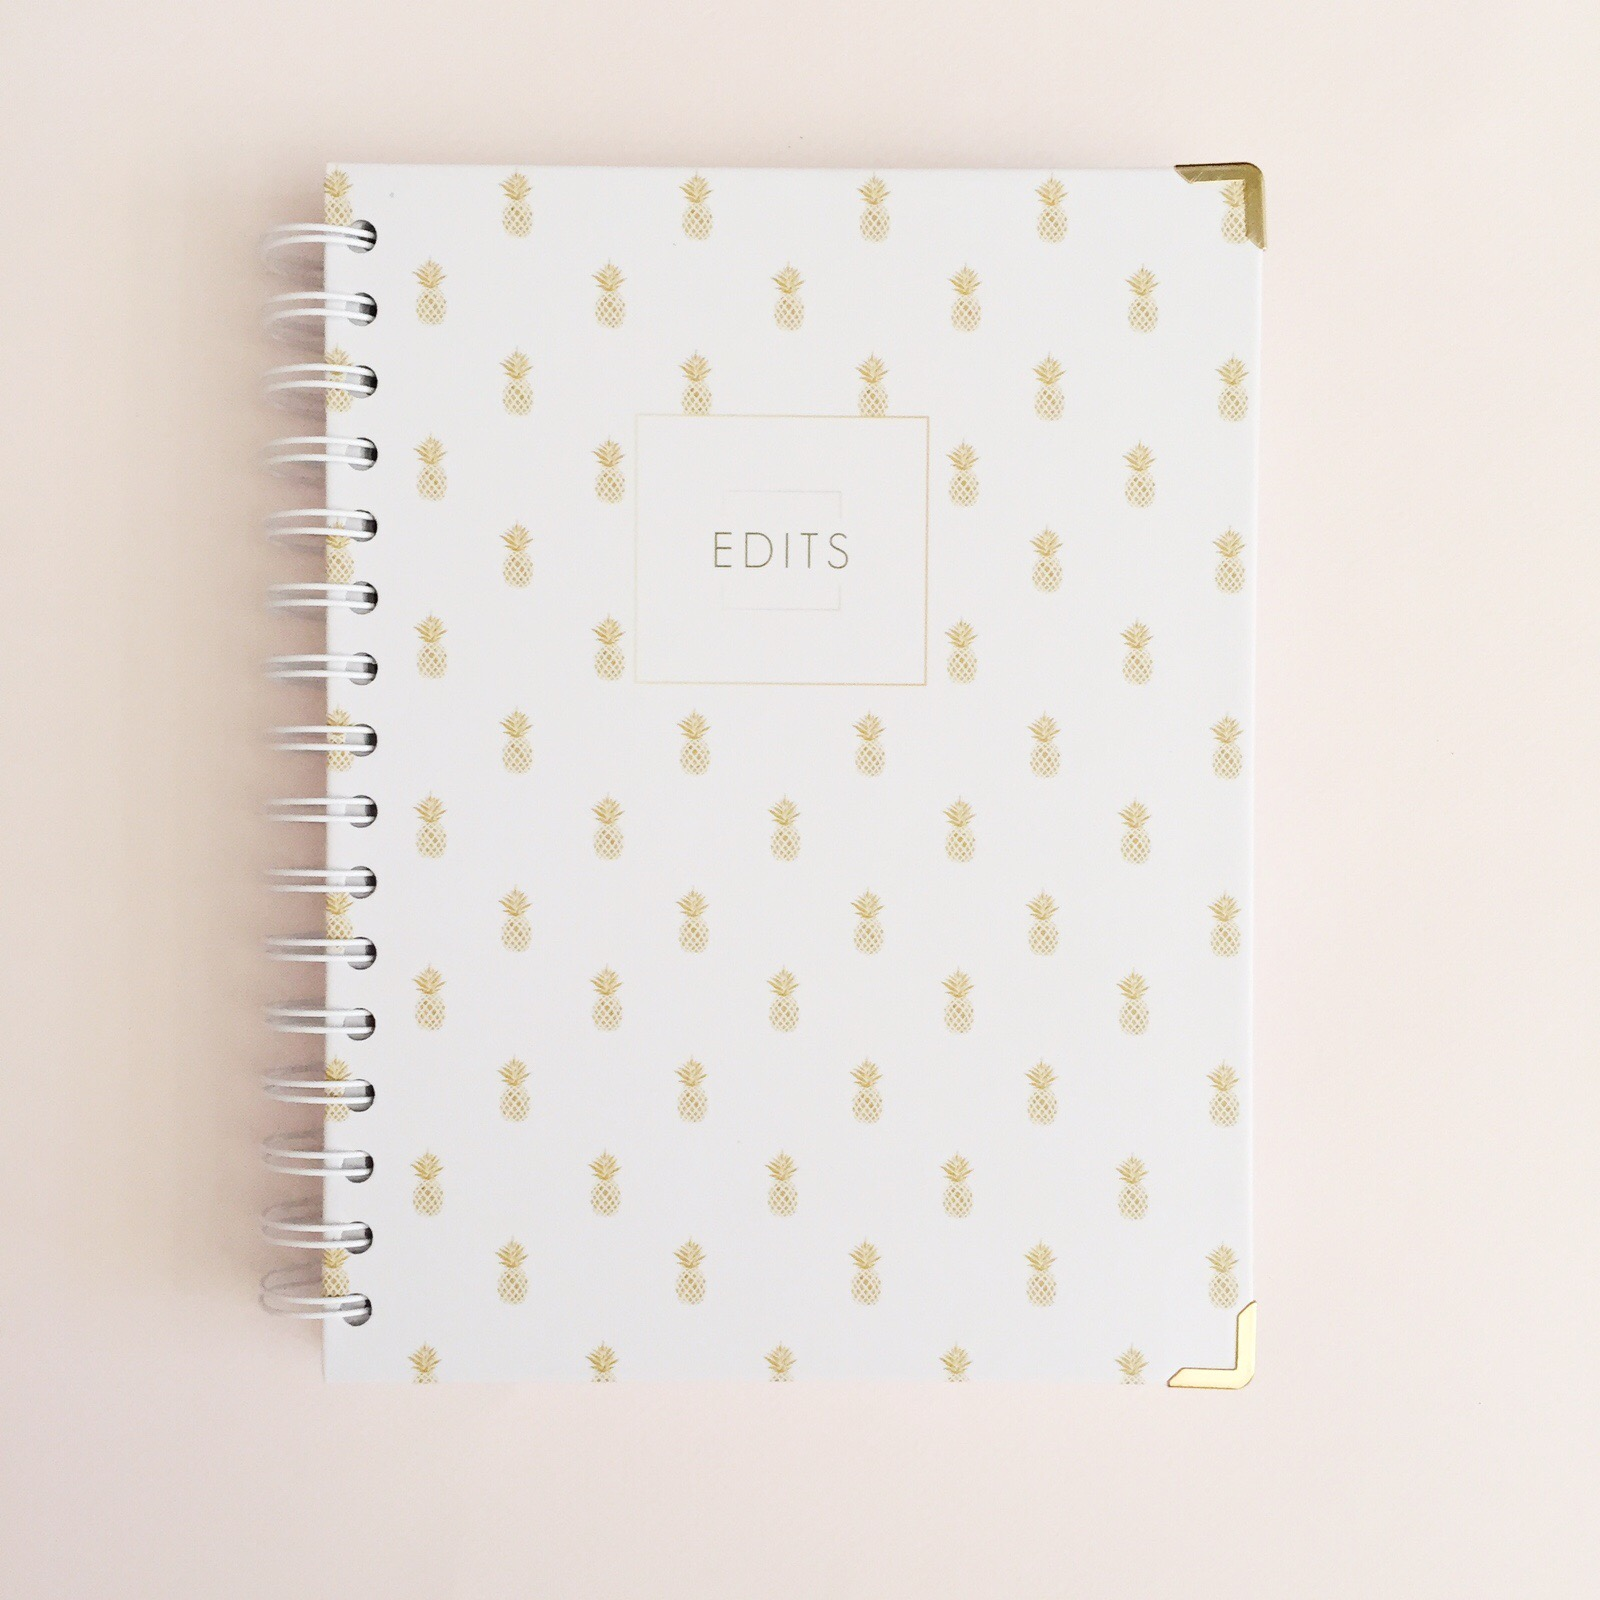 A notebook to compliment Your Weekly Edit 2017. Beautiful covers, high qualitypaper, durable design, and simple in its essence- our Edits range is there to give you space to write down your dreams, ideas, doodles, or notes. With 100 ruled pages, a pocket in the front cover for loose bits of paper, a ring binder for easy page flipping, strong metal gold corners and thick, 120gsmlinedpaperto keep things neat, you can rest assured that this notebook can handle your busy every day goings.